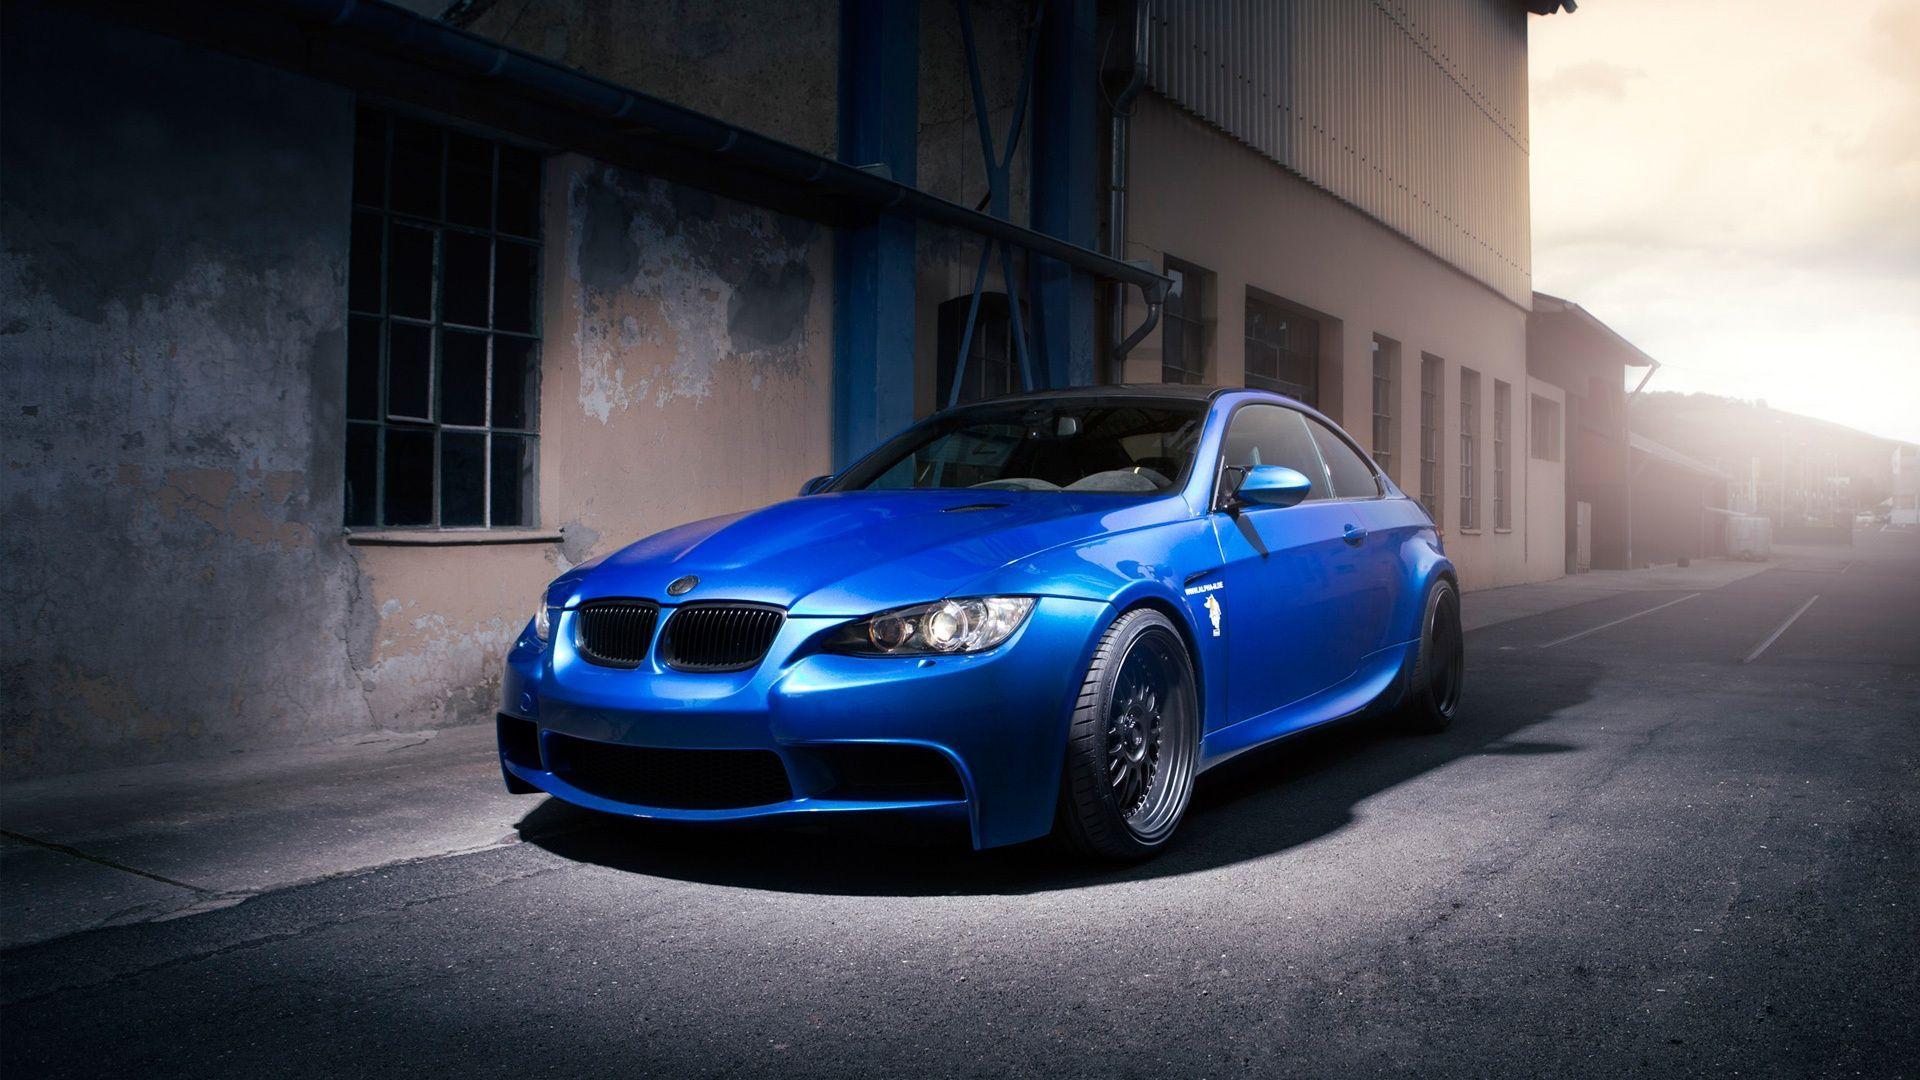 Simple Wallpaper High Resolution Bmw - BMW-M3-Wallpaper-25-1920x1080  HD_231940.jpg